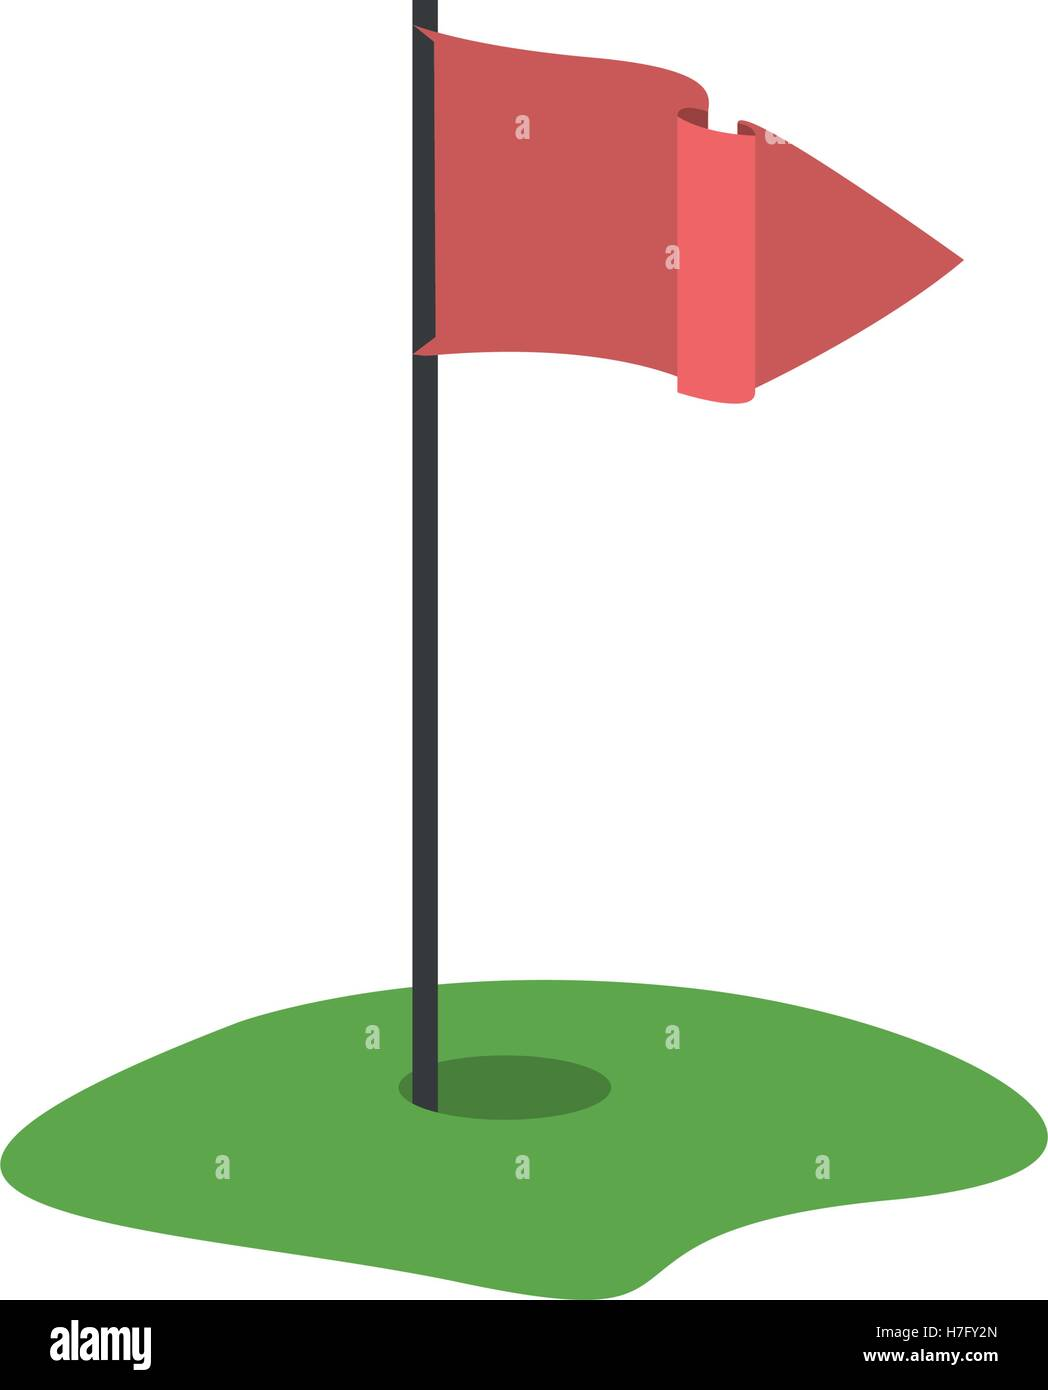 Golf Hole Stock Vector Images Alamy Diagram With Red Flag Icon Over White Background Illustration